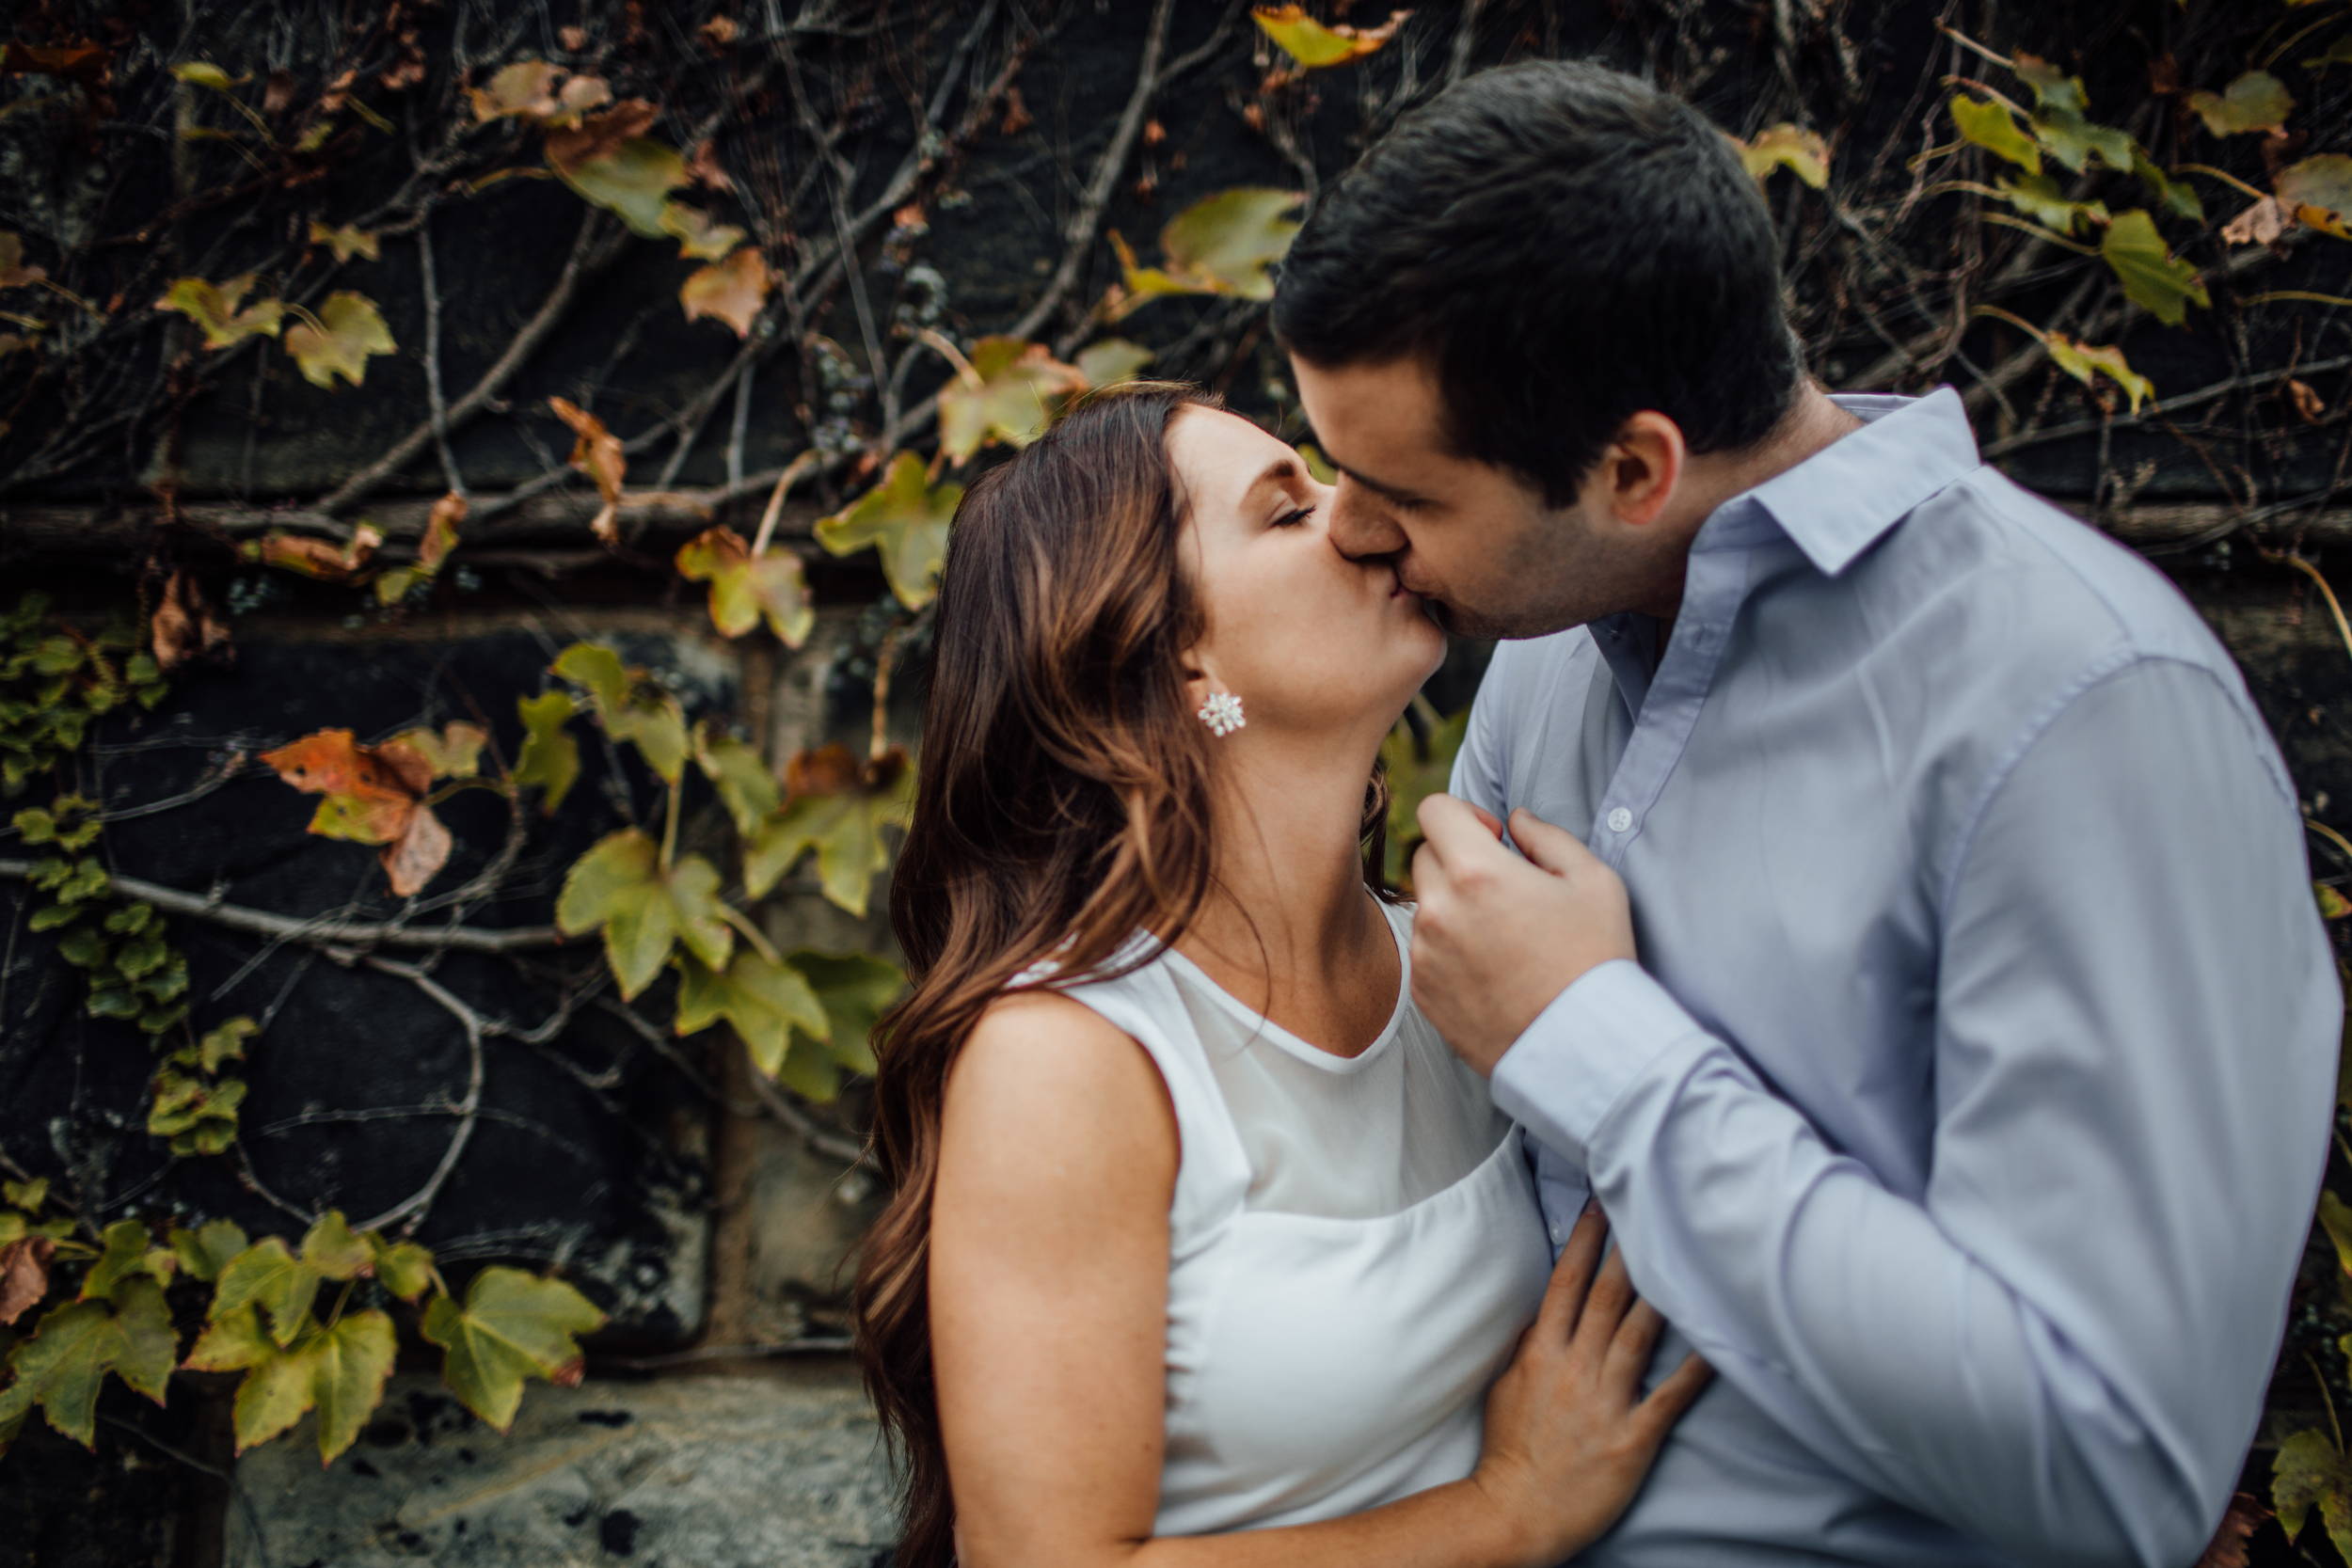 BRITTANYandKEVIN-Engagement2015 (66 of 115).jpg